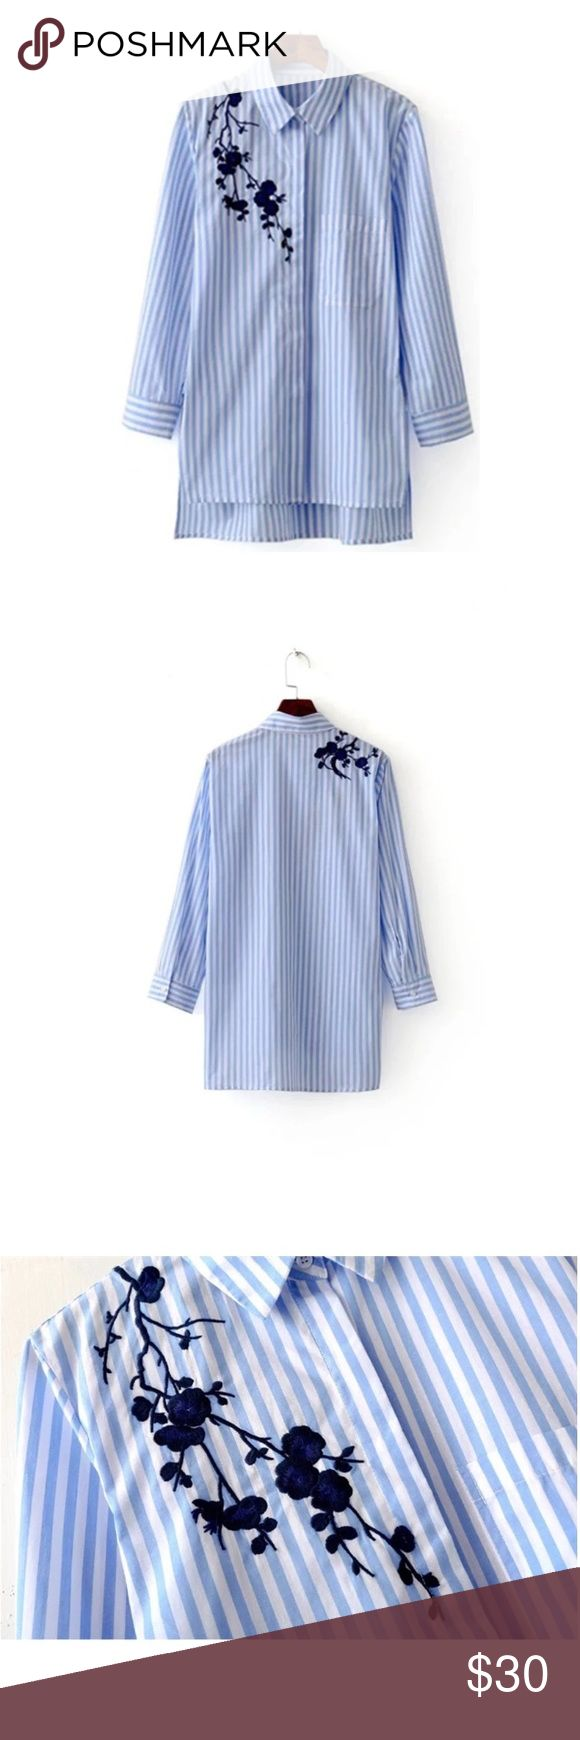 Embroidered Blouse CottonStripe Long Sleeve Shirt Women Embroidered Blouses Cotton Blue Striped Long Sleeve Shirt Turn-down Collar Dior Tops